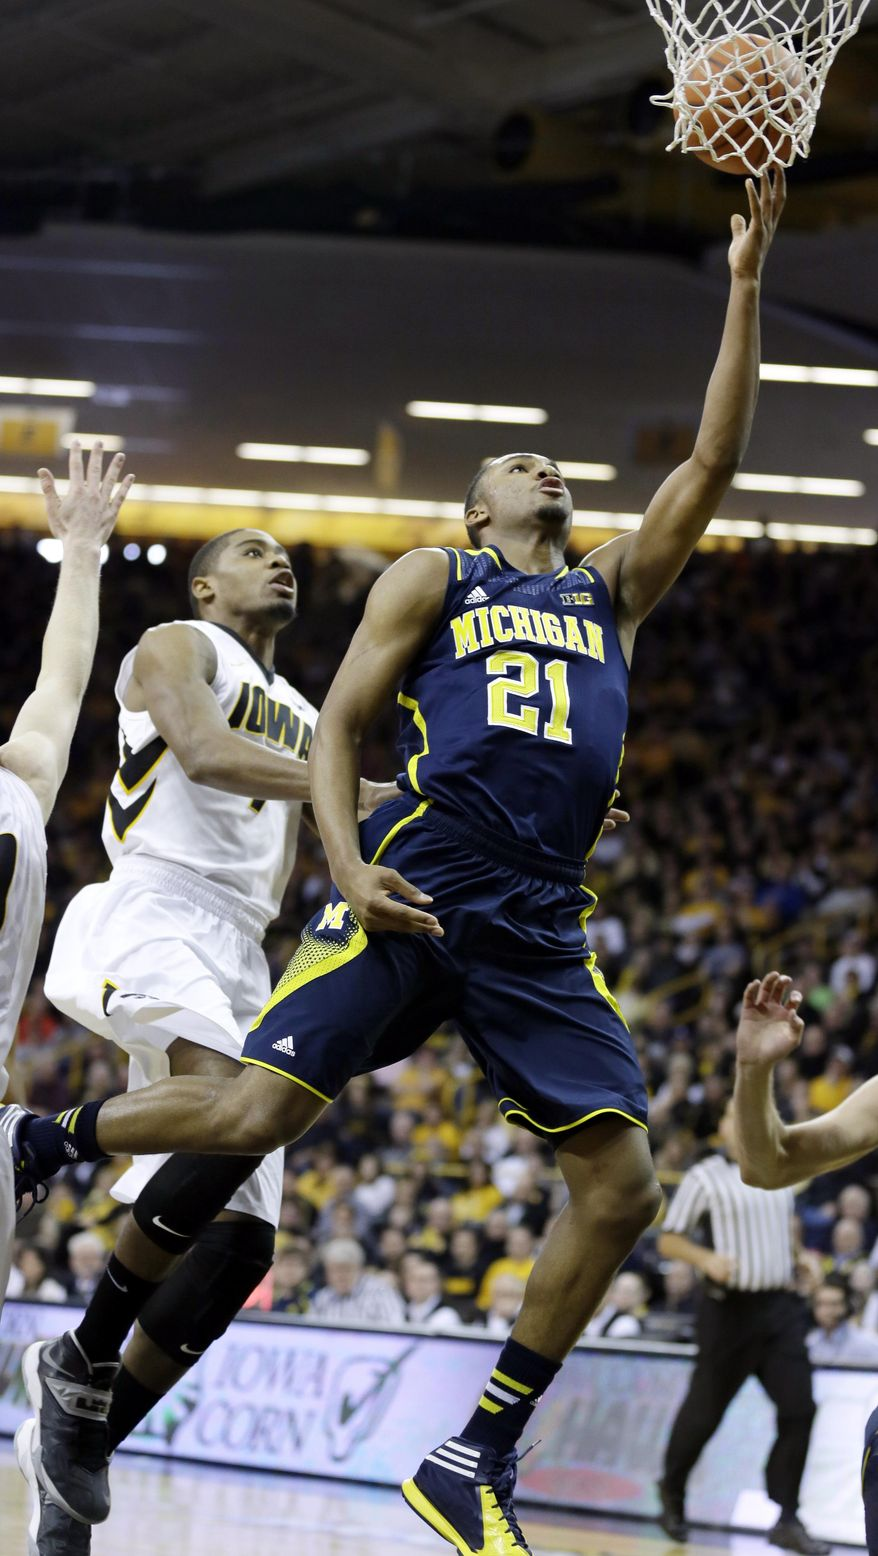 Michigan guard Zak Irvin drives to the basket past Iowa forward Melsahn Basabe, left, during the first half of an NCAA college basketball game, Saturday, Feb. 8, 2014, in Iowa City, Iowa. (AP Photo/Charlie Neibergall)